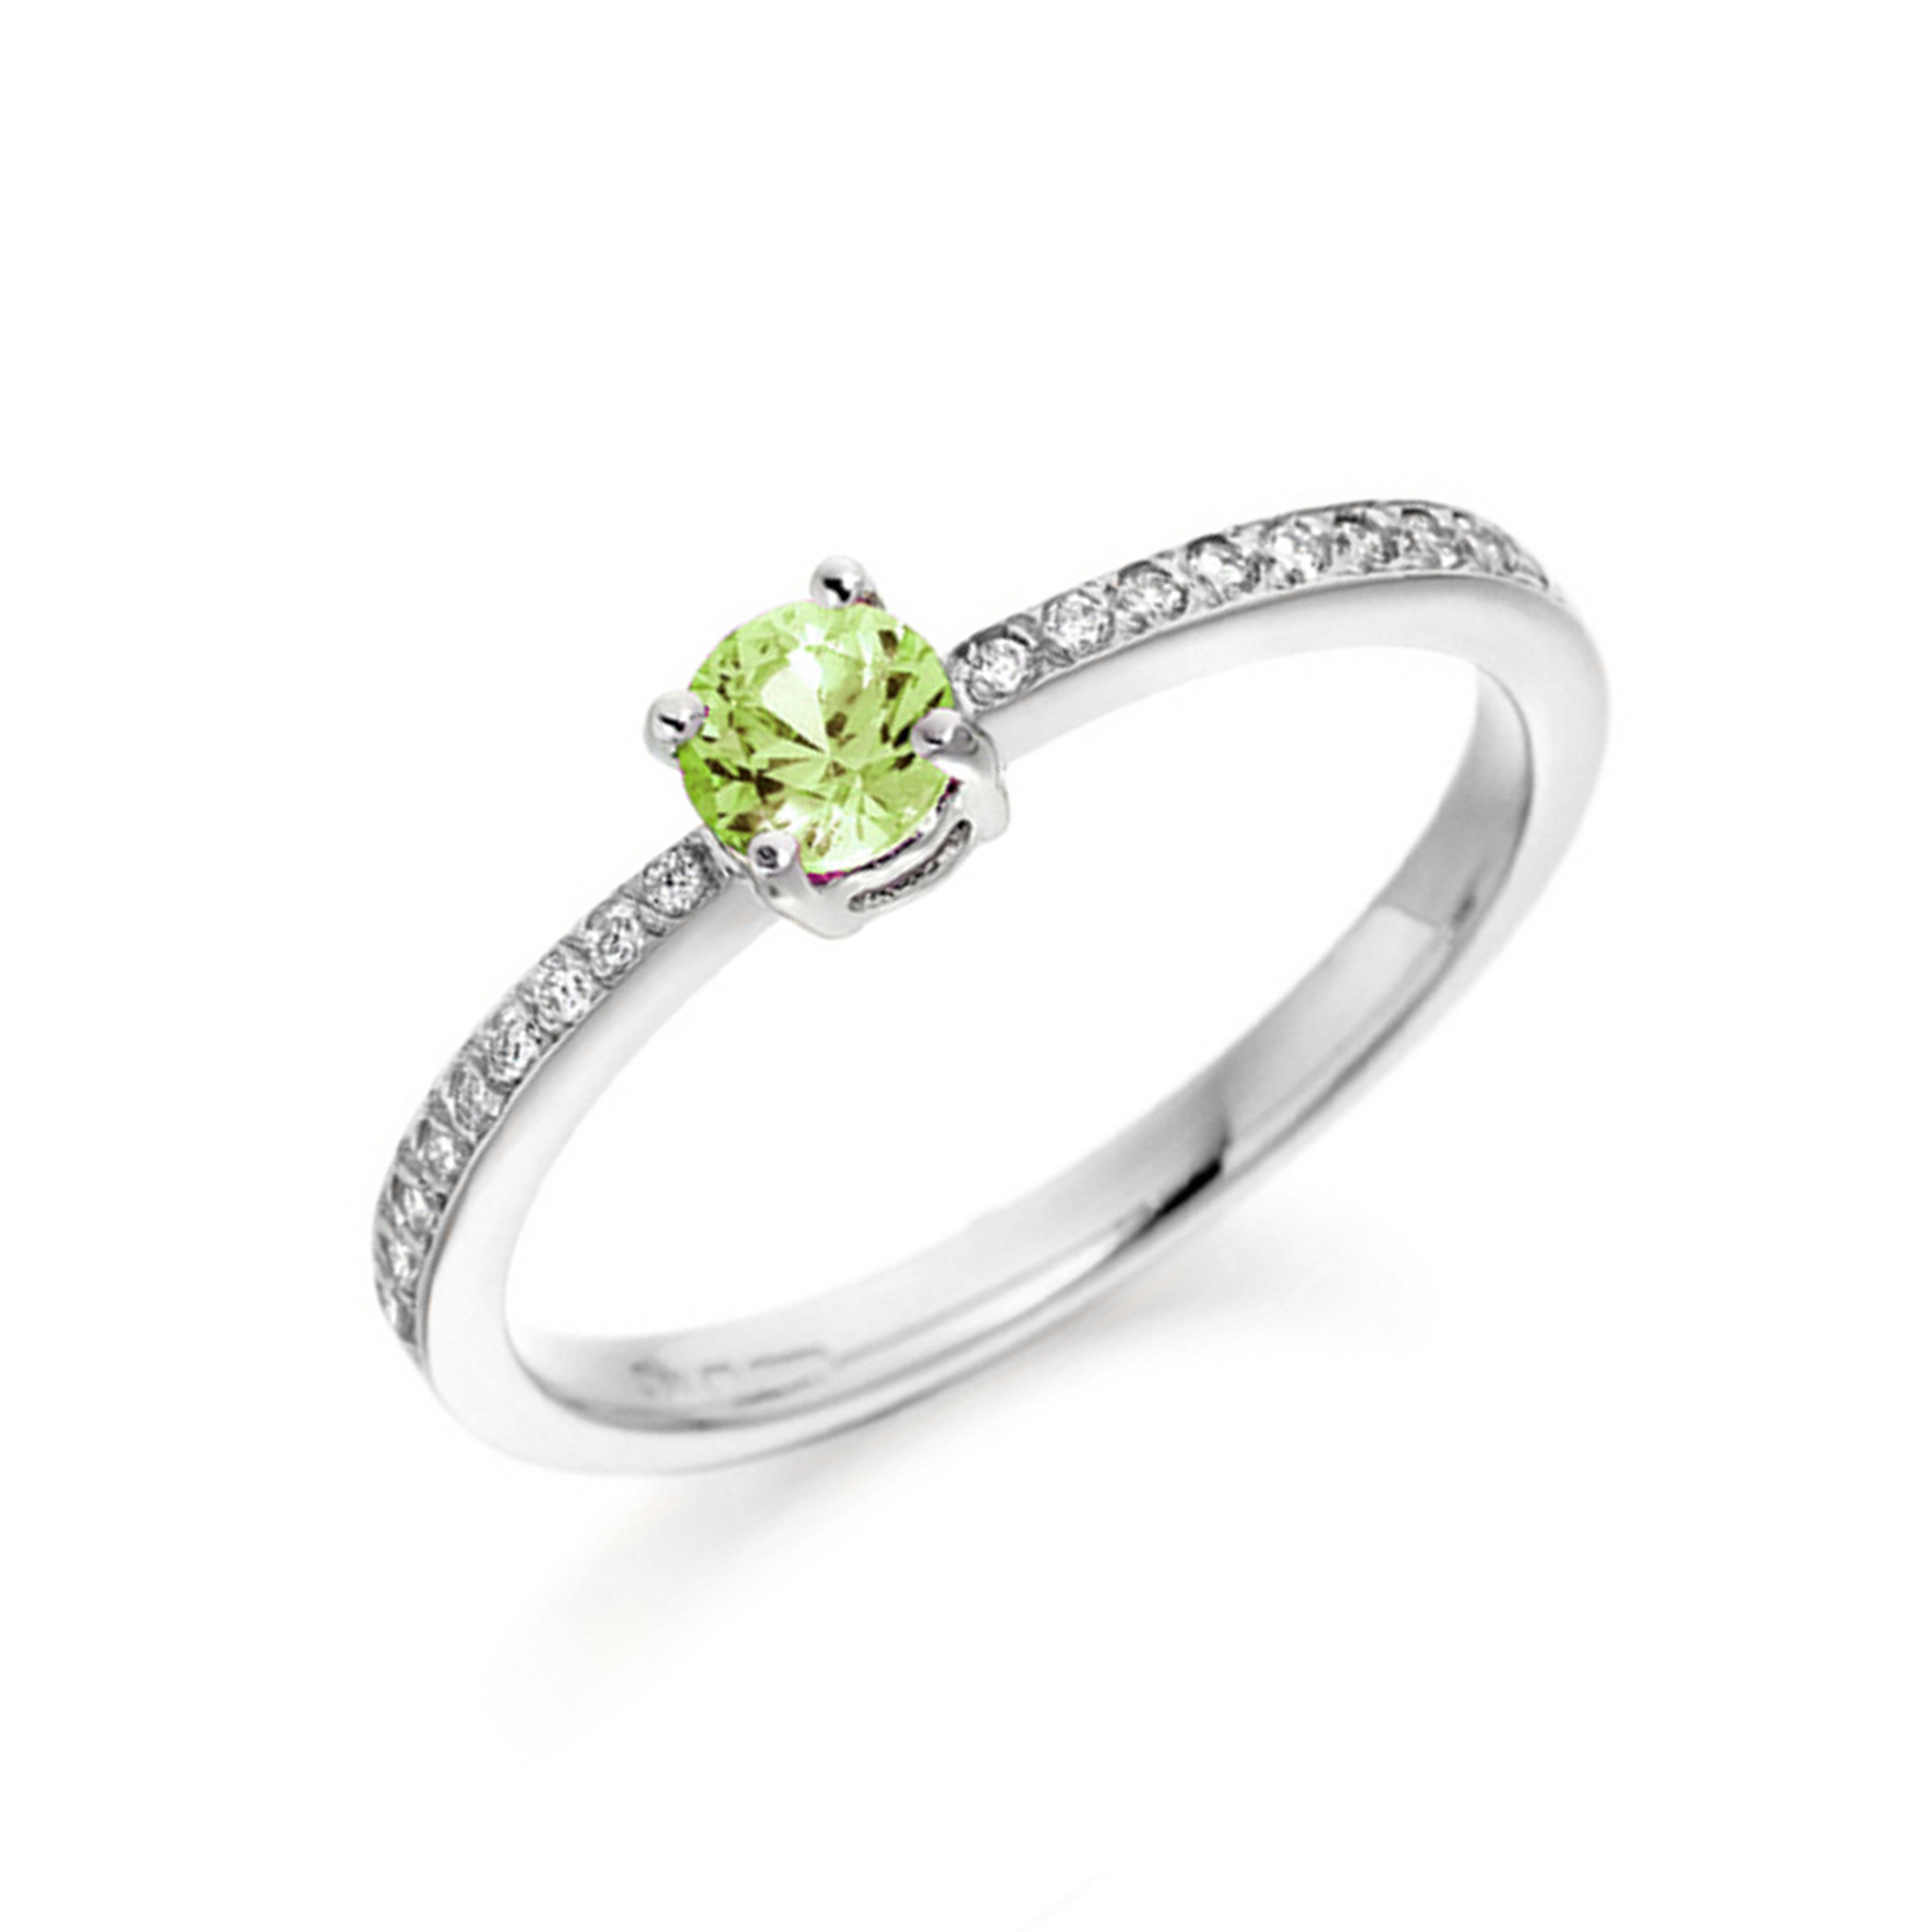 Round 4 Prong Cluster Side Stone Diamond Engagement Rings